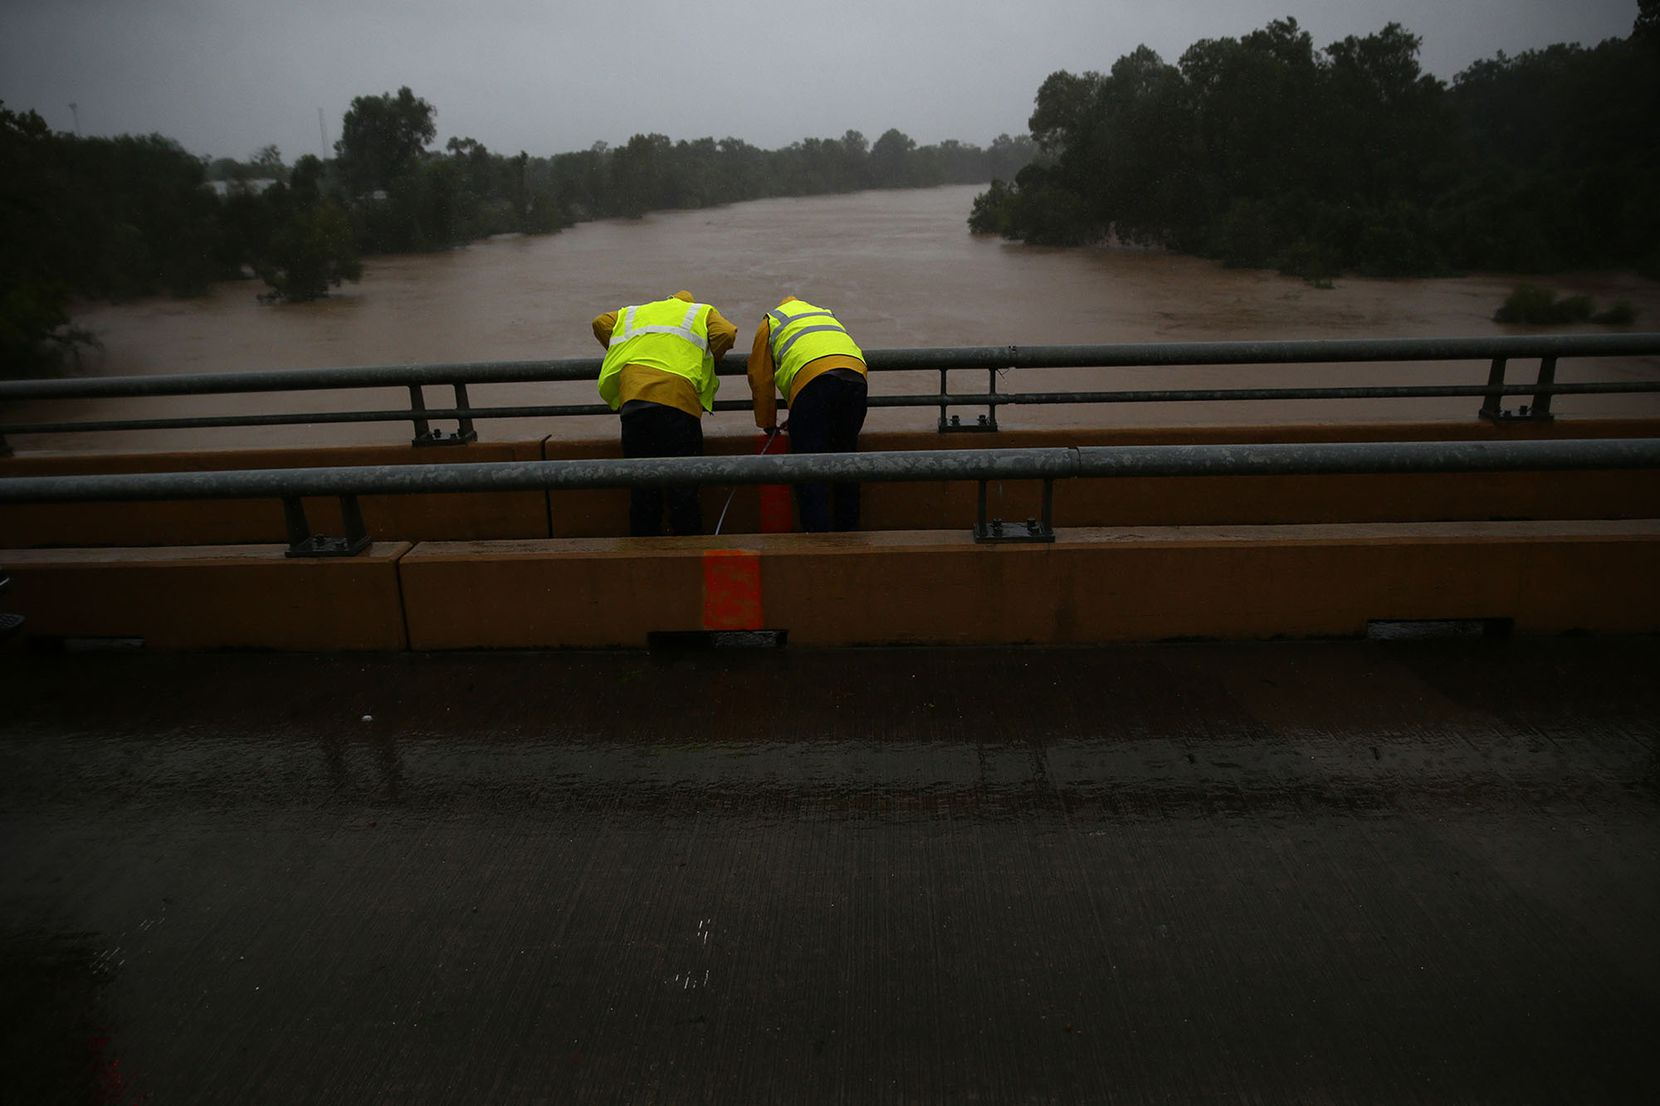 Work crews take measurements of the Brazos River as flooding continues throughout the greater Houston area Monday, Aug. 28, 2017 in Richmond, Texas. (Robert Gauthier/Los Angeles Times/TNS)